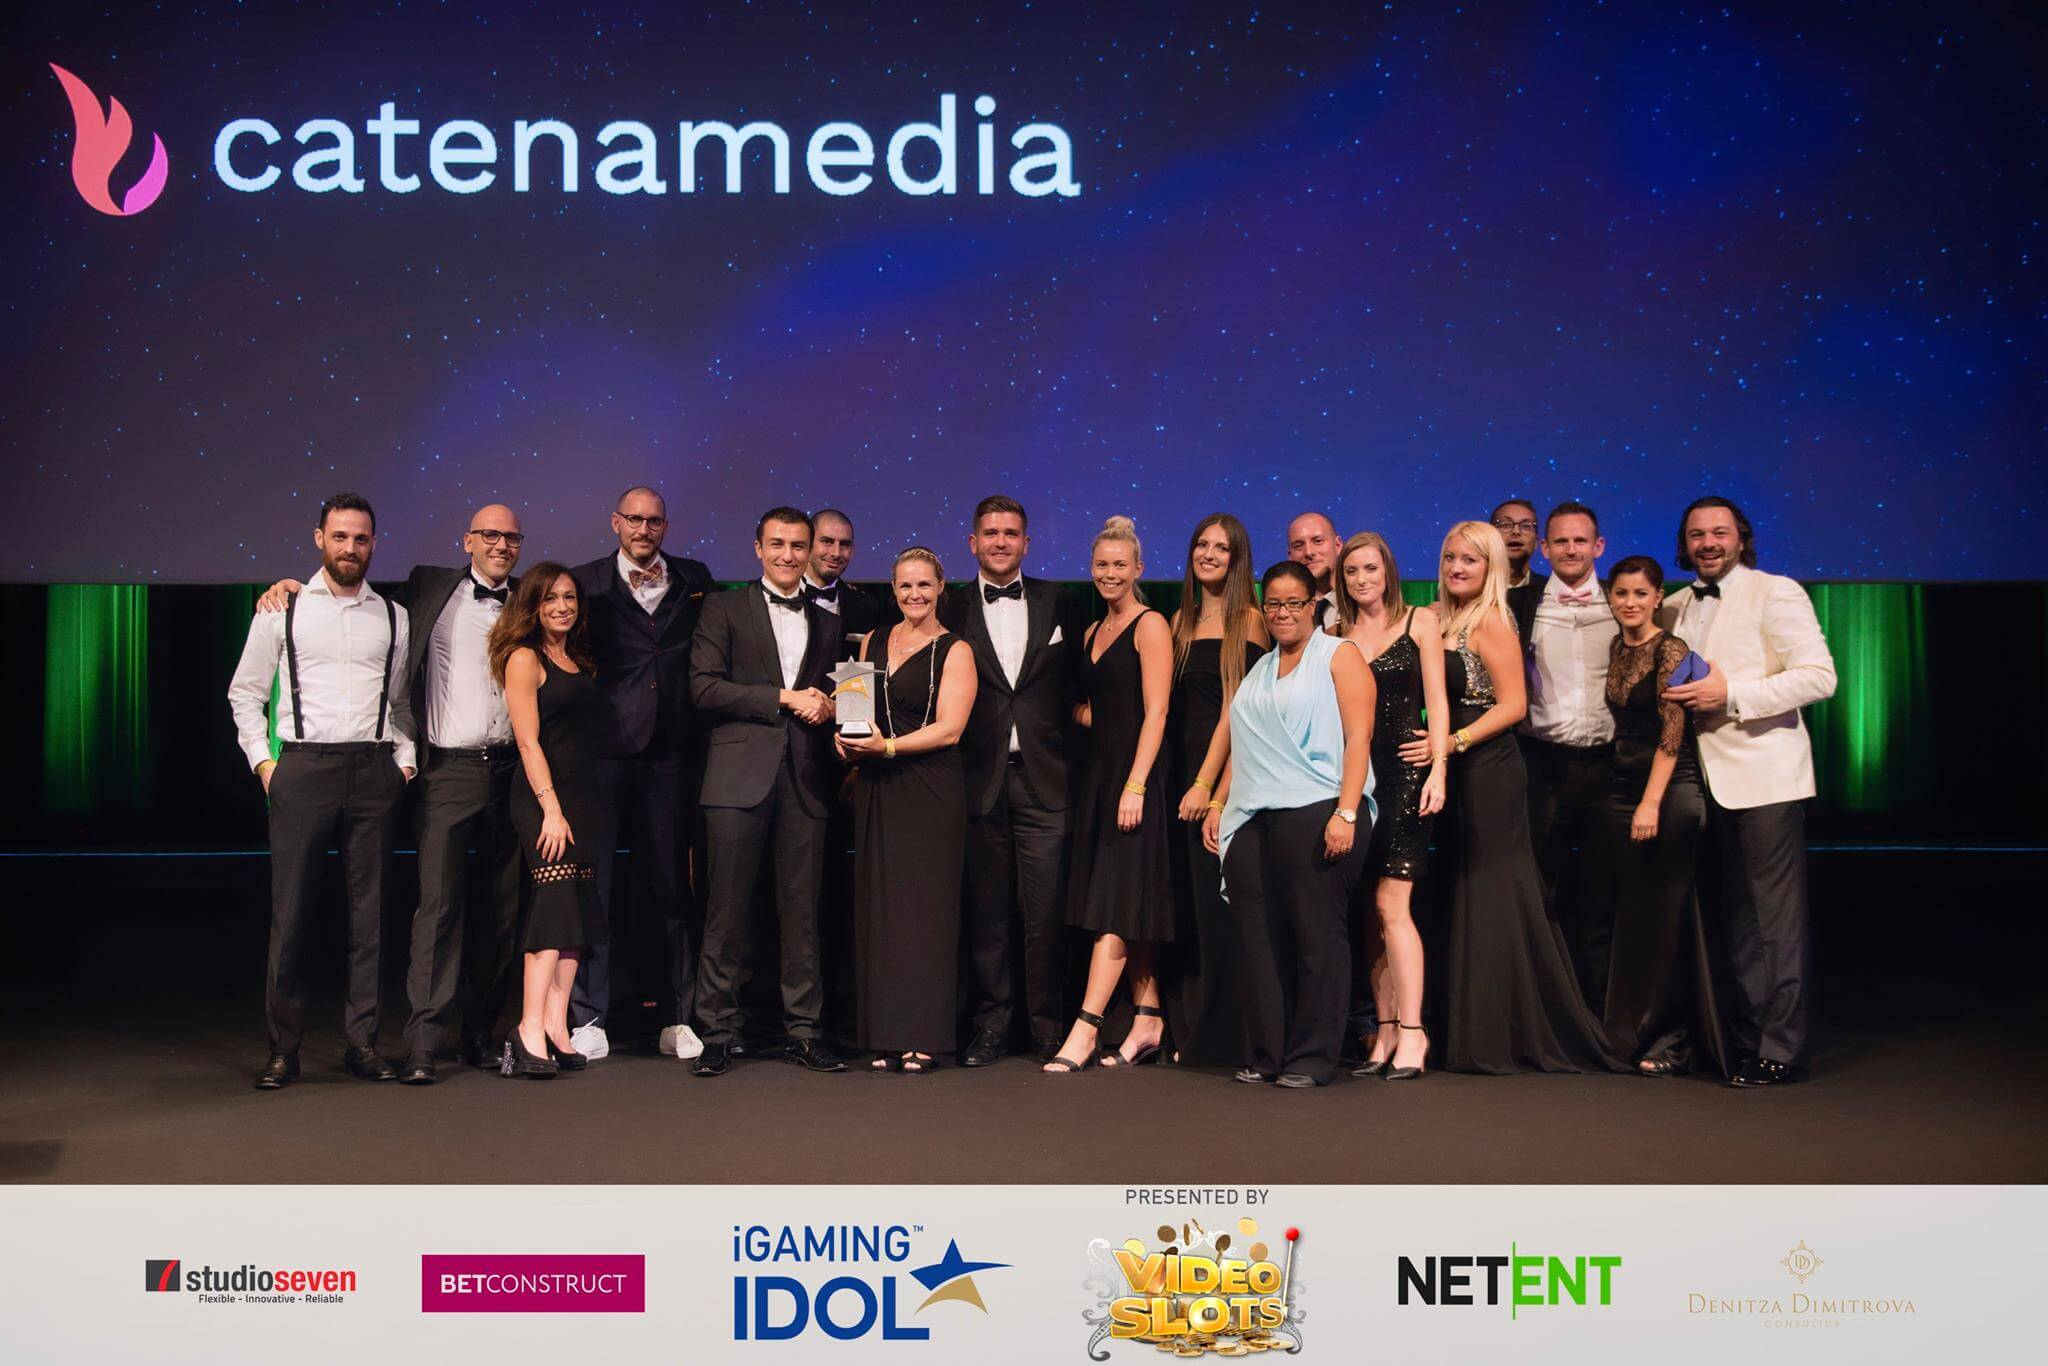 Catena Media Employer of the Year 2017 in iGamingIdol awards